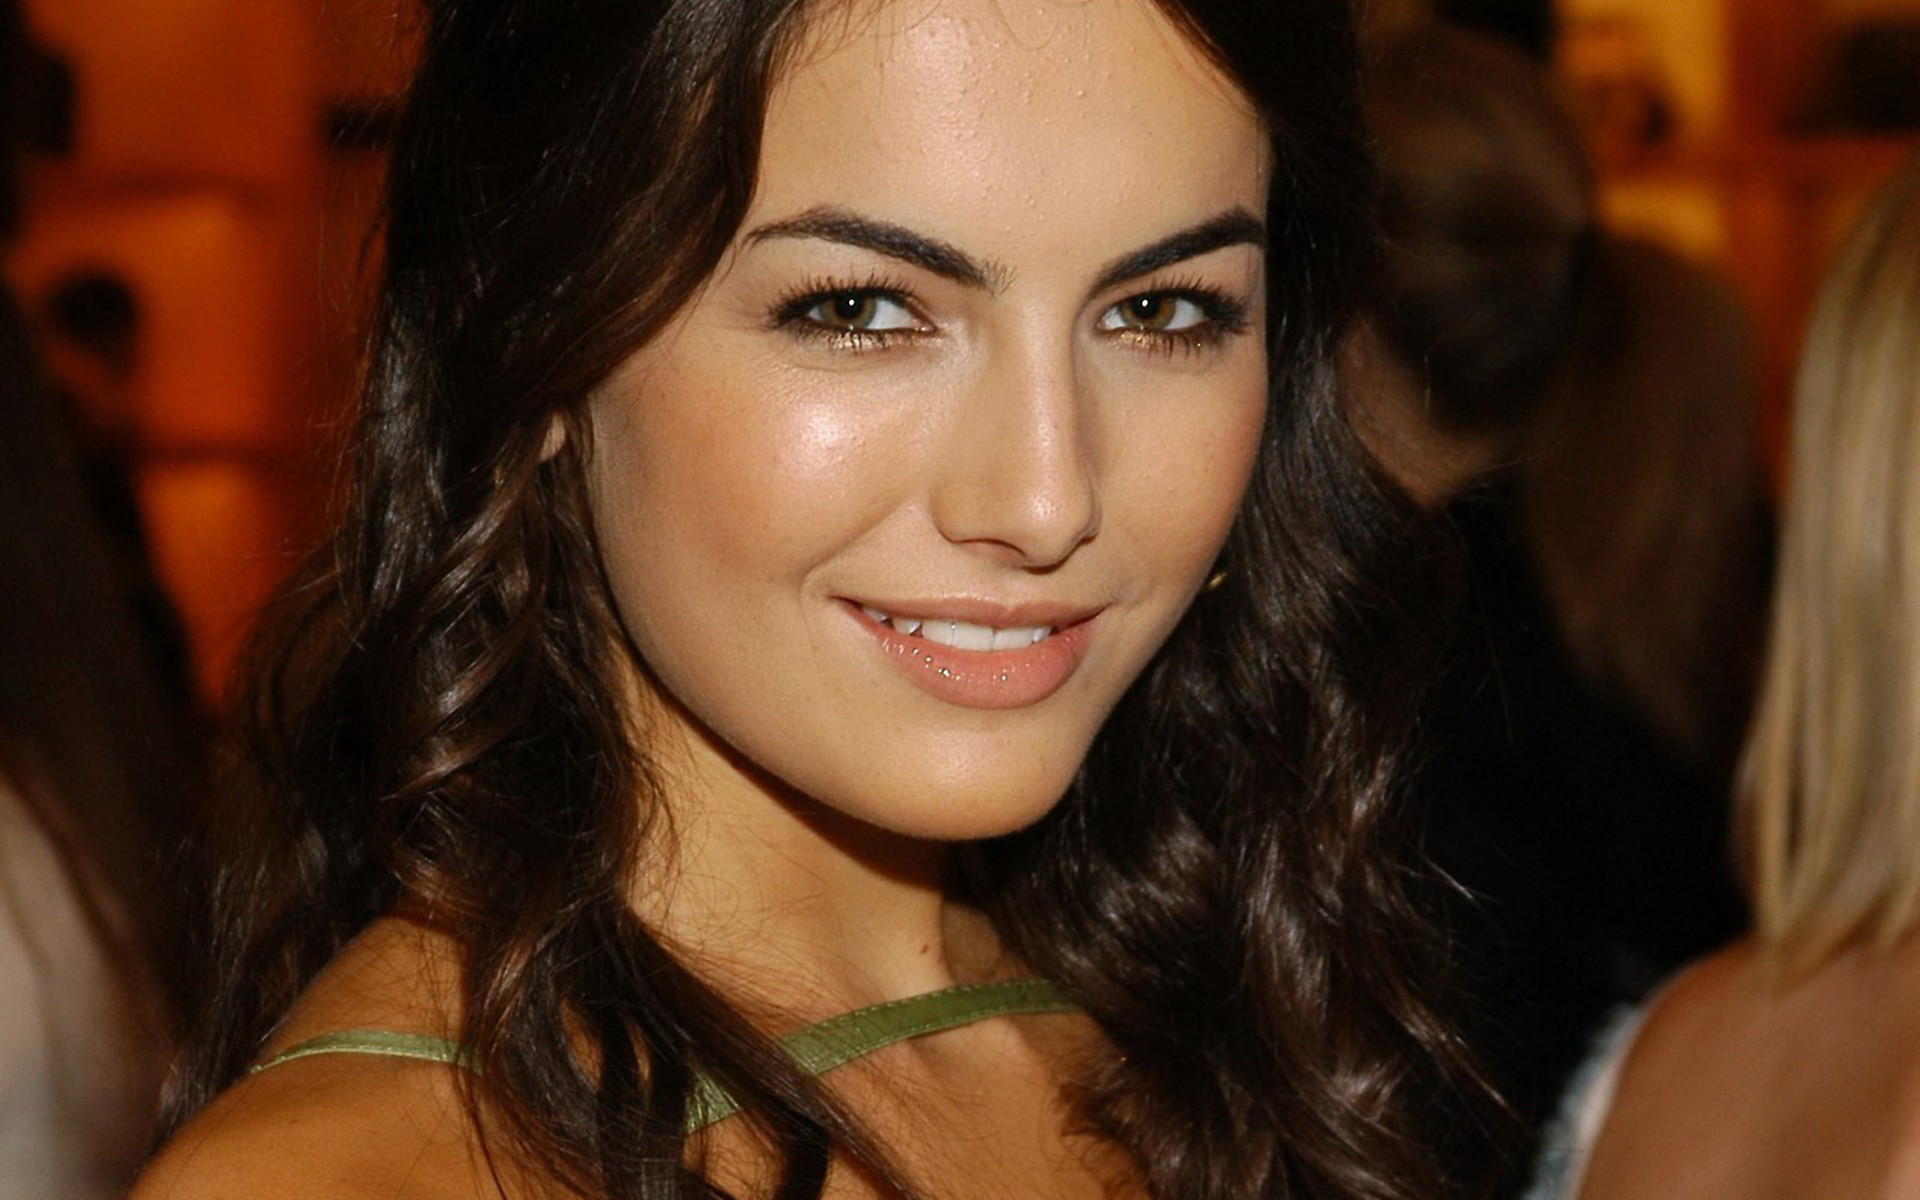 Res: 1920x1200, Camilla Belle Wallpapers 19 - 1920 X 1200